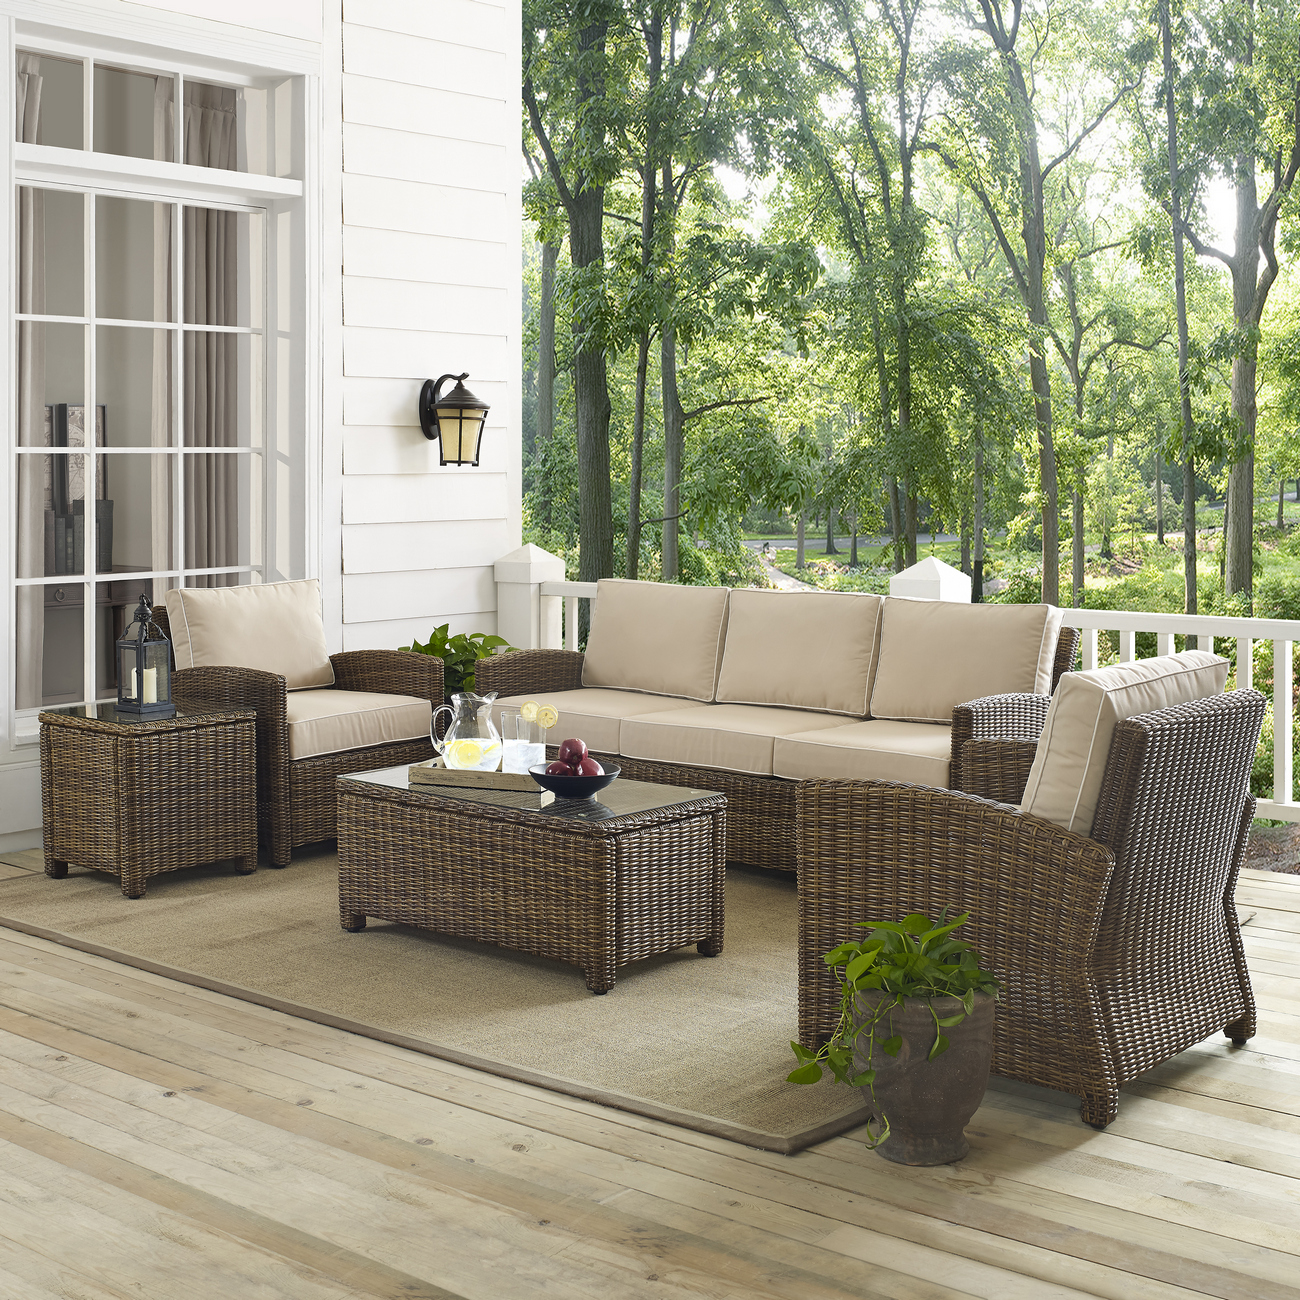 Crosley Brands Wicker Sofa Conversation Set Sand Cushions